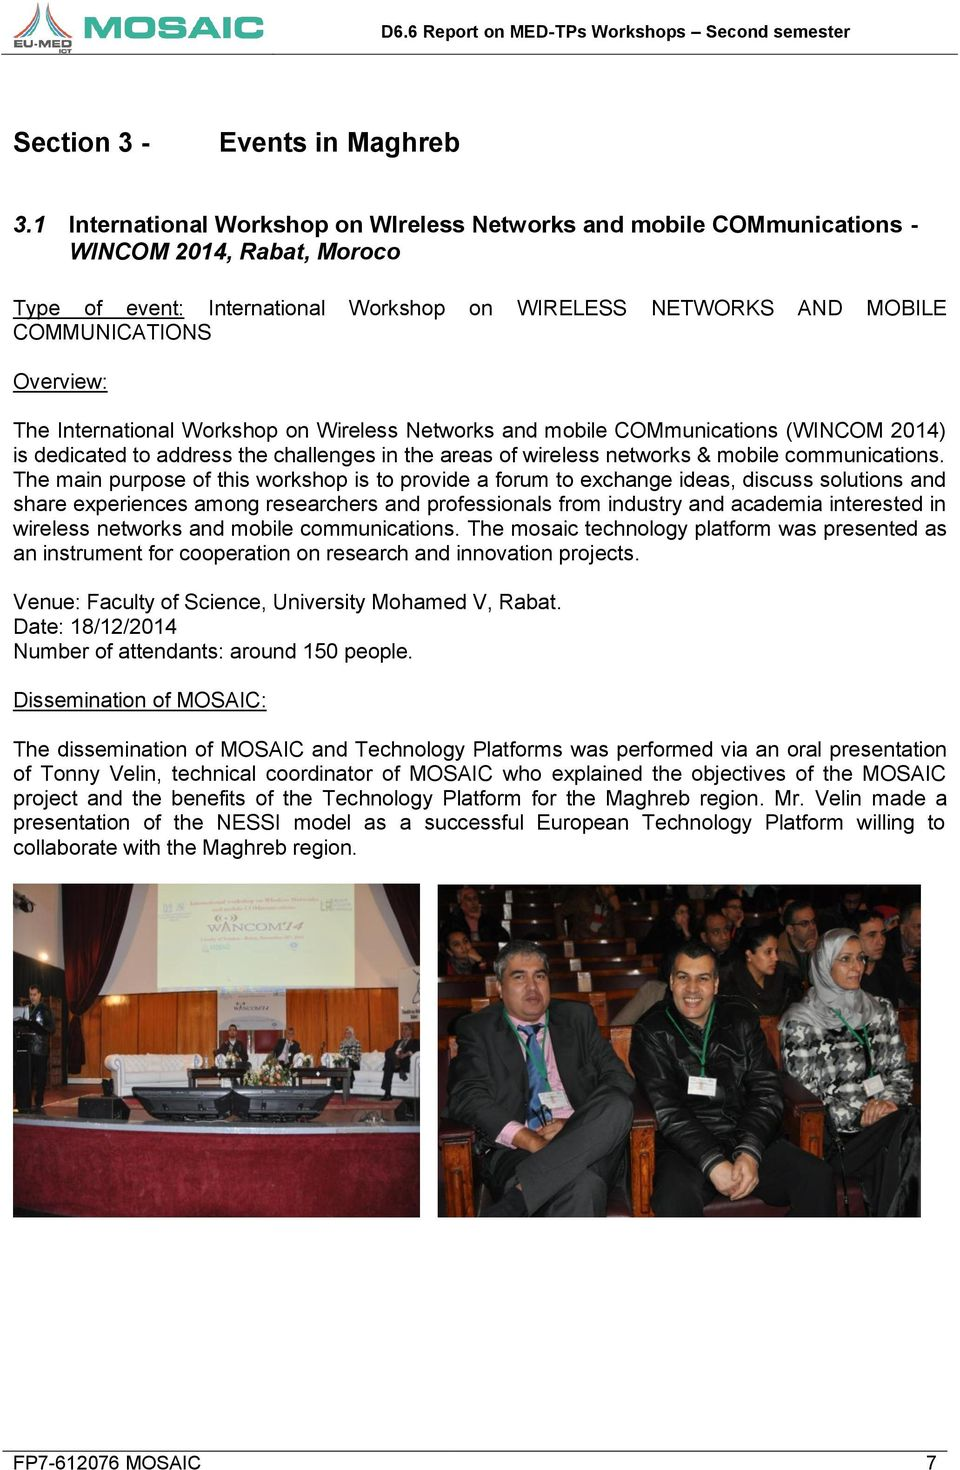 International Workshop on Wireless Networks and mobile COMmunications (WINCOM 2014) is dedicated to address the challenges in the areas of wireless networks & mobile communications.